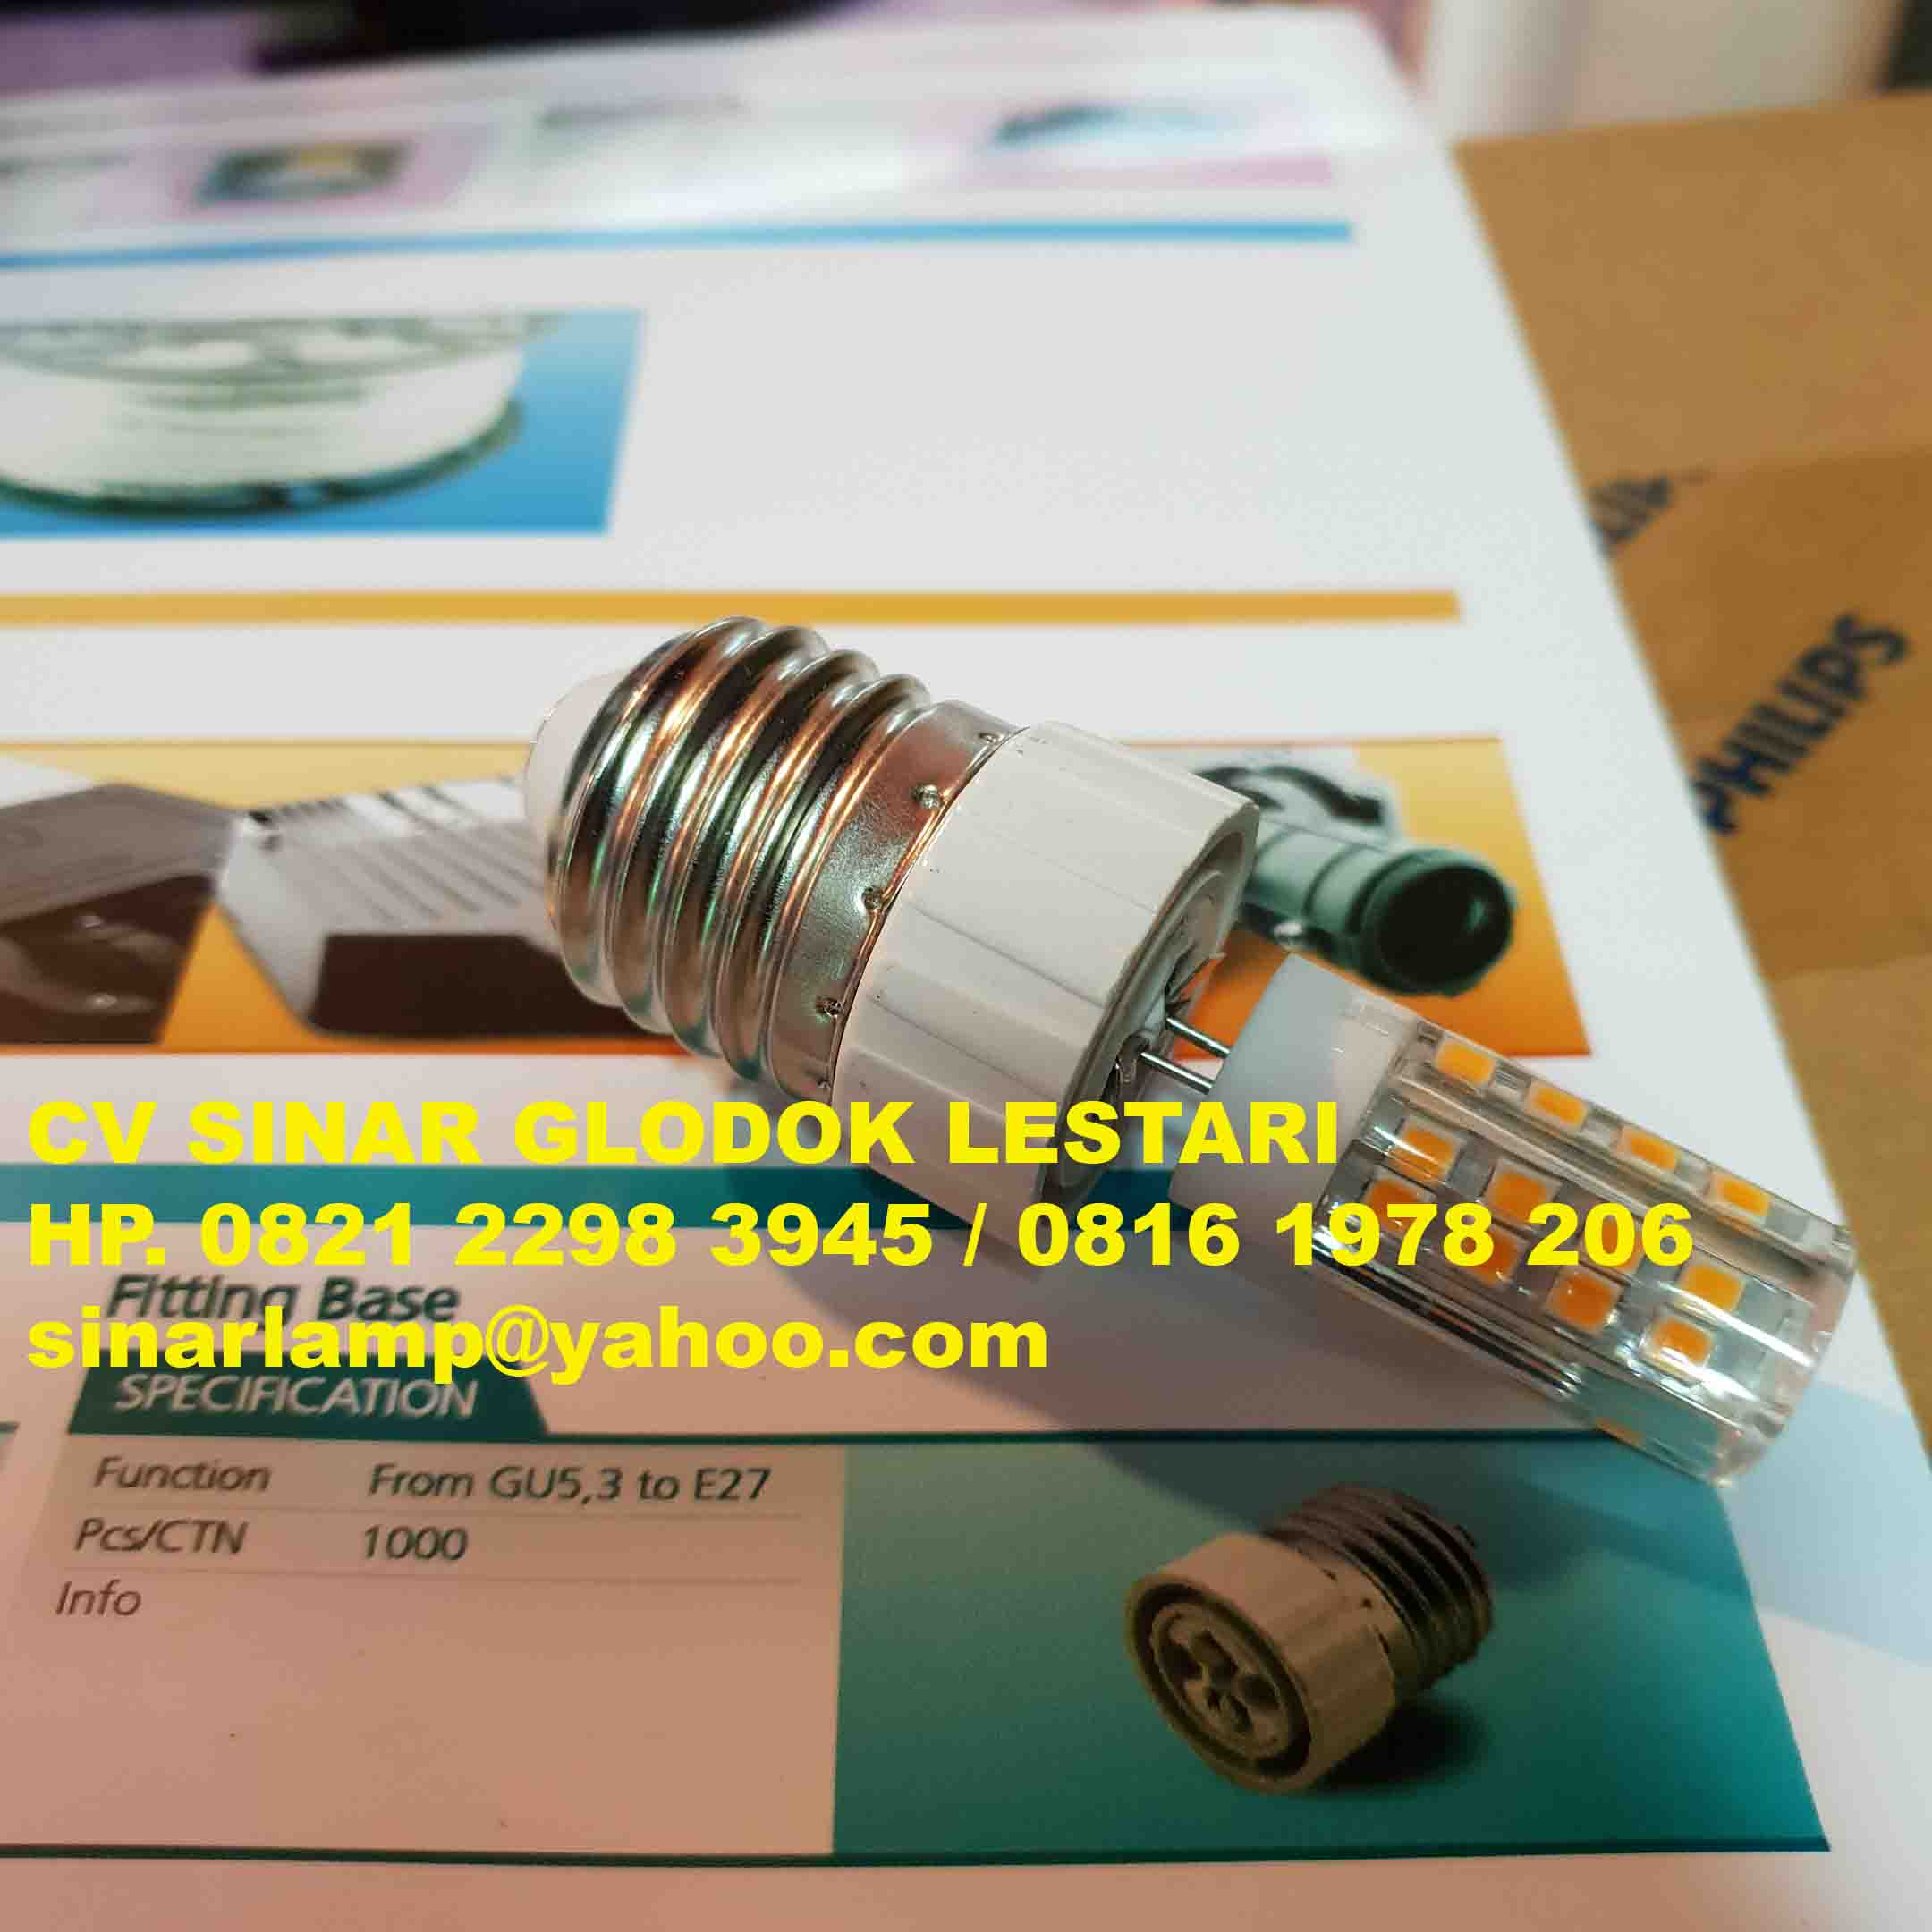 Fitting Lampu Over E27 Ulir ke GU 5.3 MR16 Tusuk